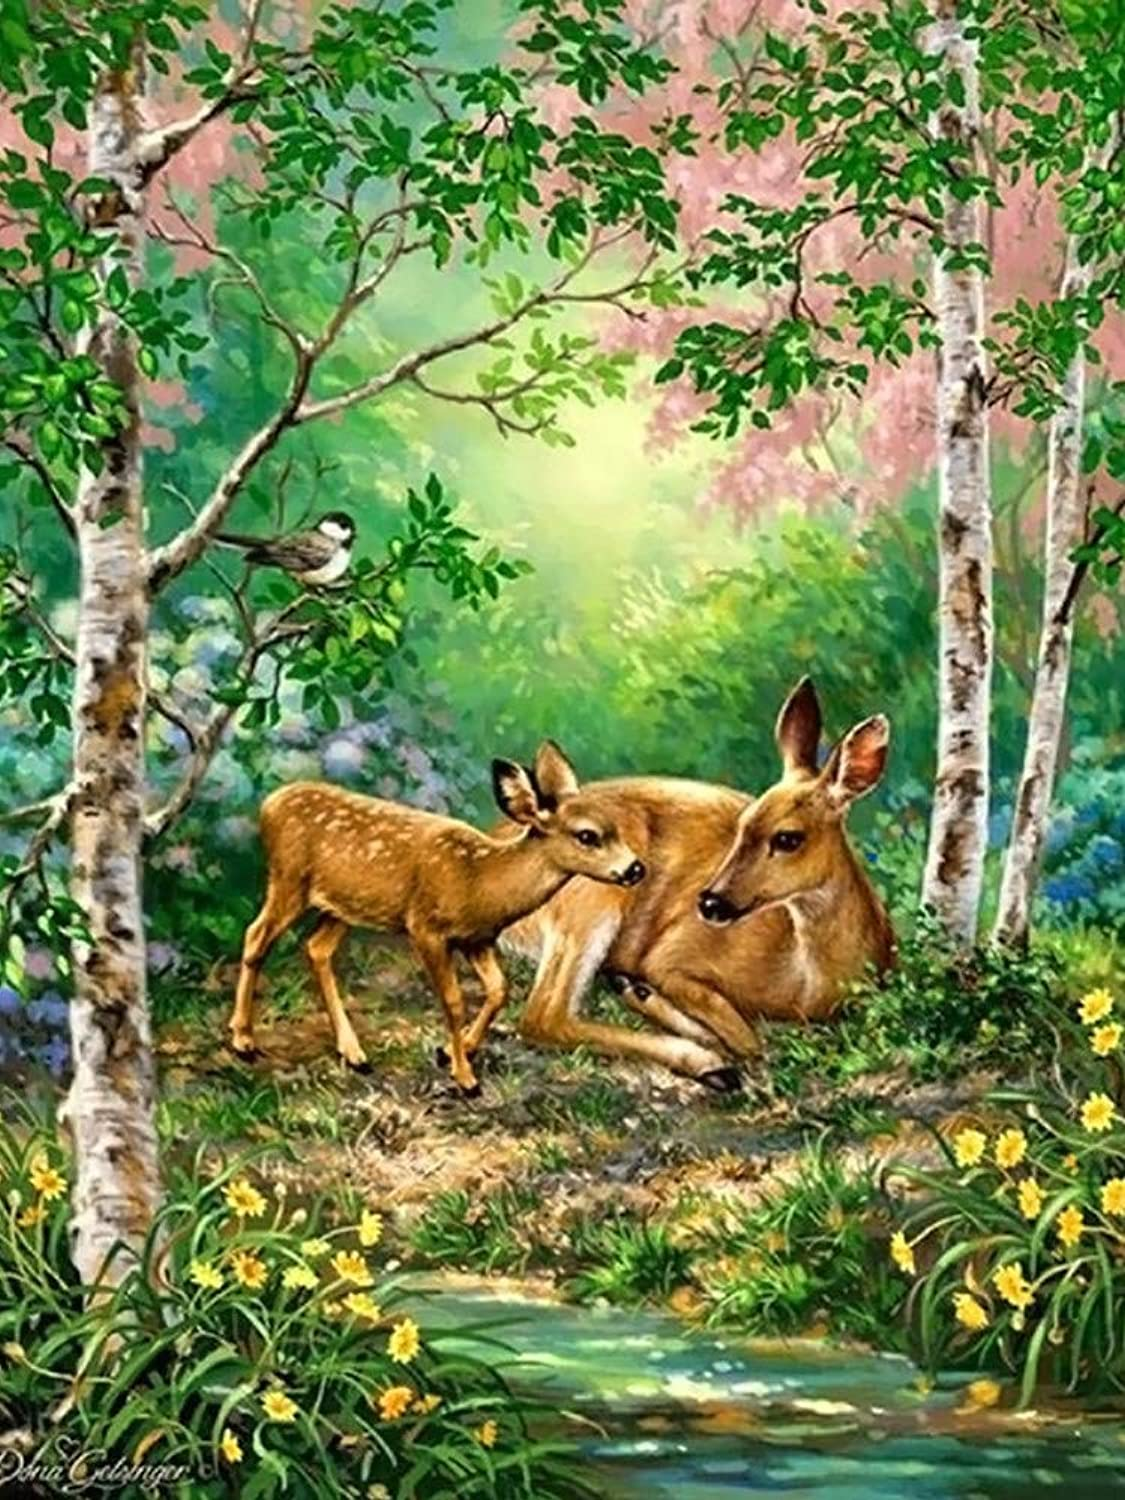 Xhabb 5D DIY Diamond Painting Living Room Decoration Painting Forest Deer 5D Full Diamond Cross Stitch 30X40Cm